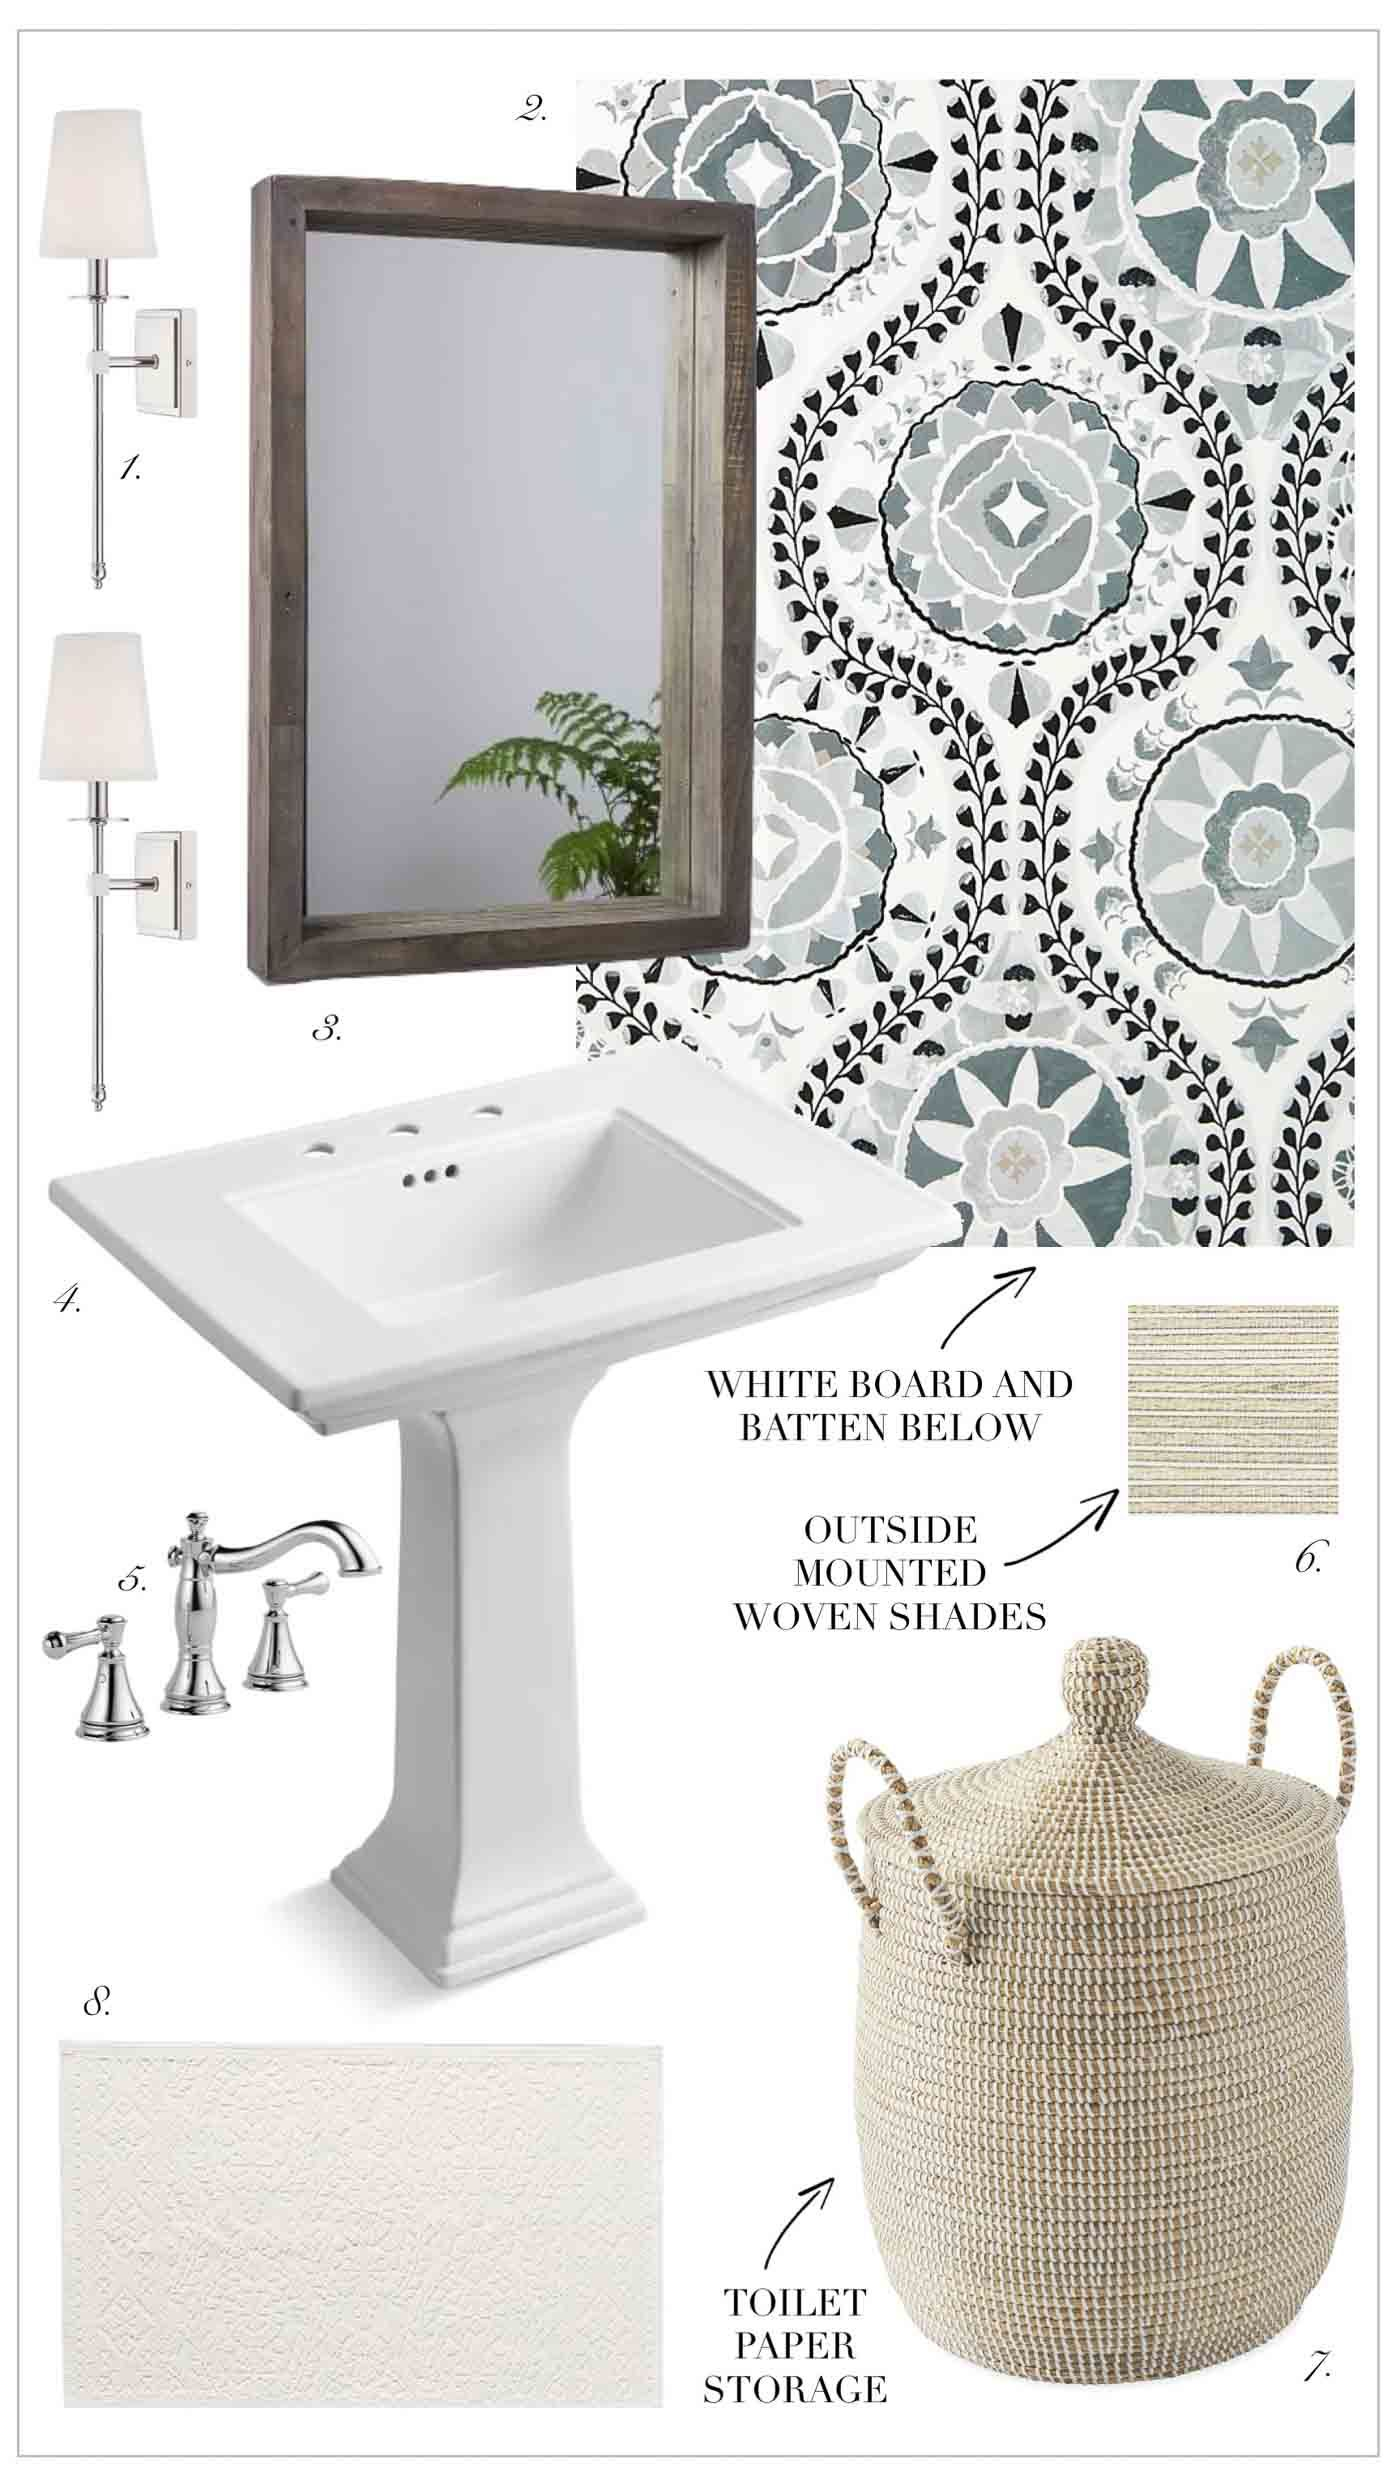 Four Potential Powder Room Design Ideas With Images Powder